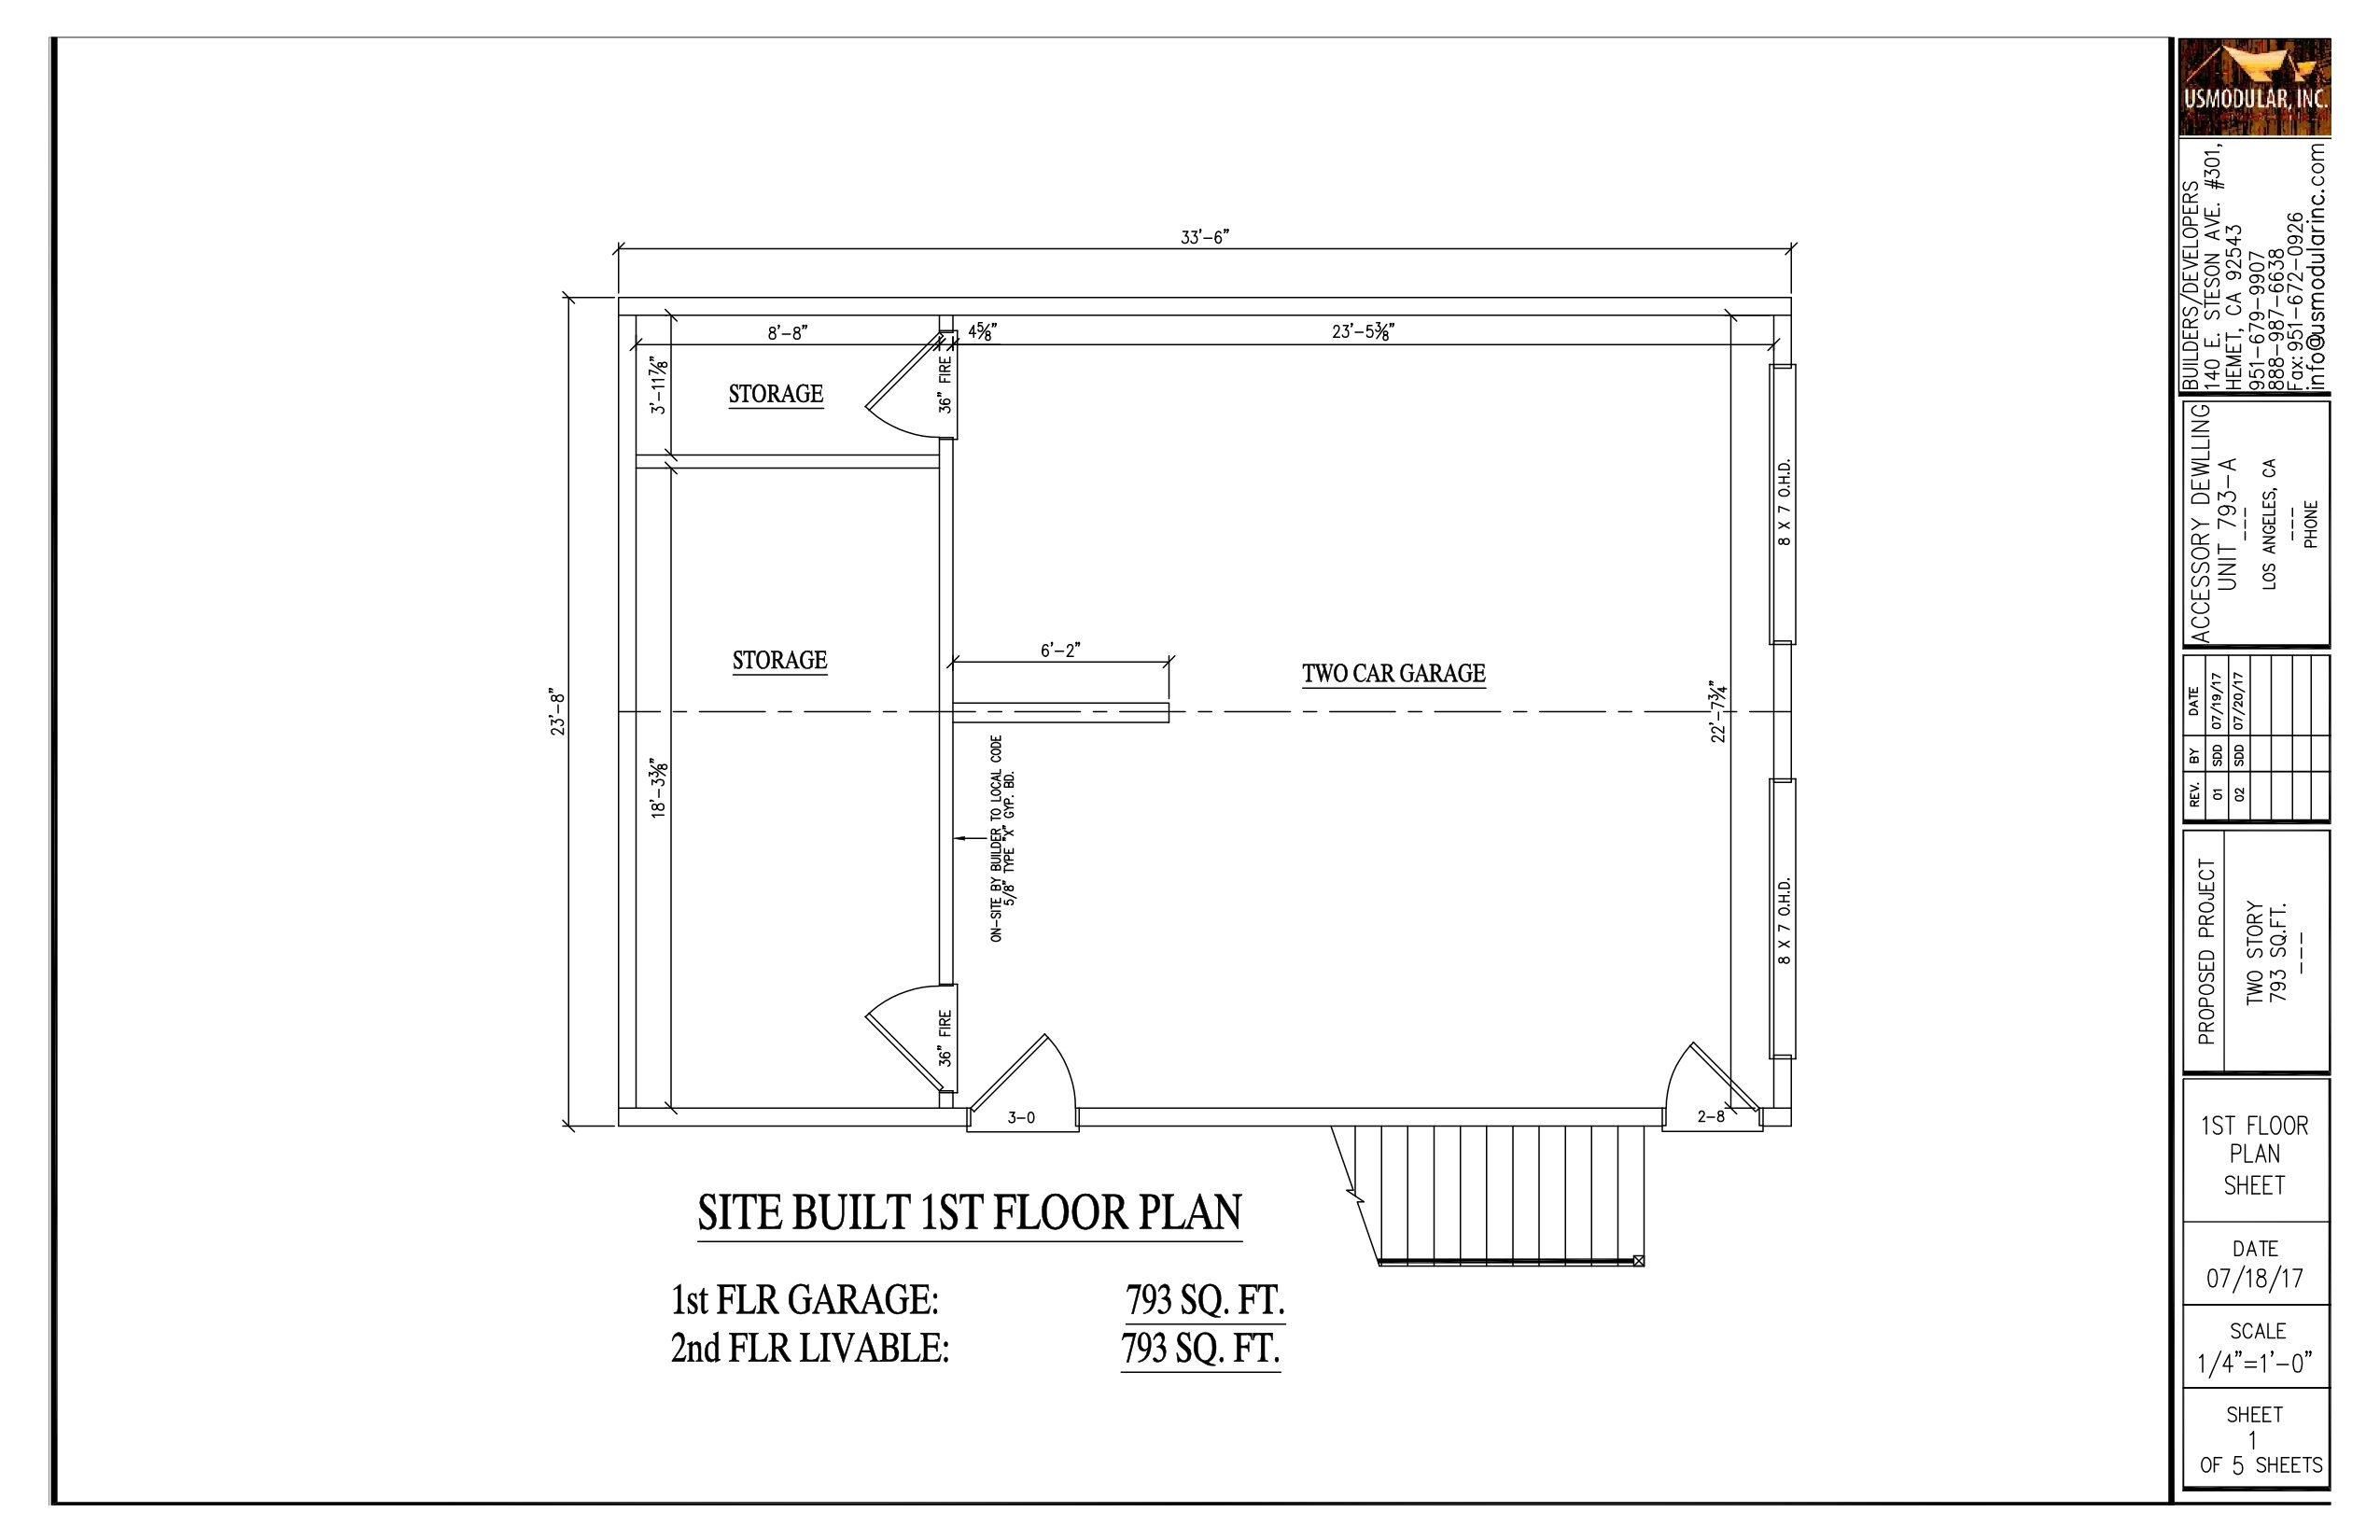 Monolithic Dome Floor Plans Photo Fire Exit Floor Plan Template Images Emergency